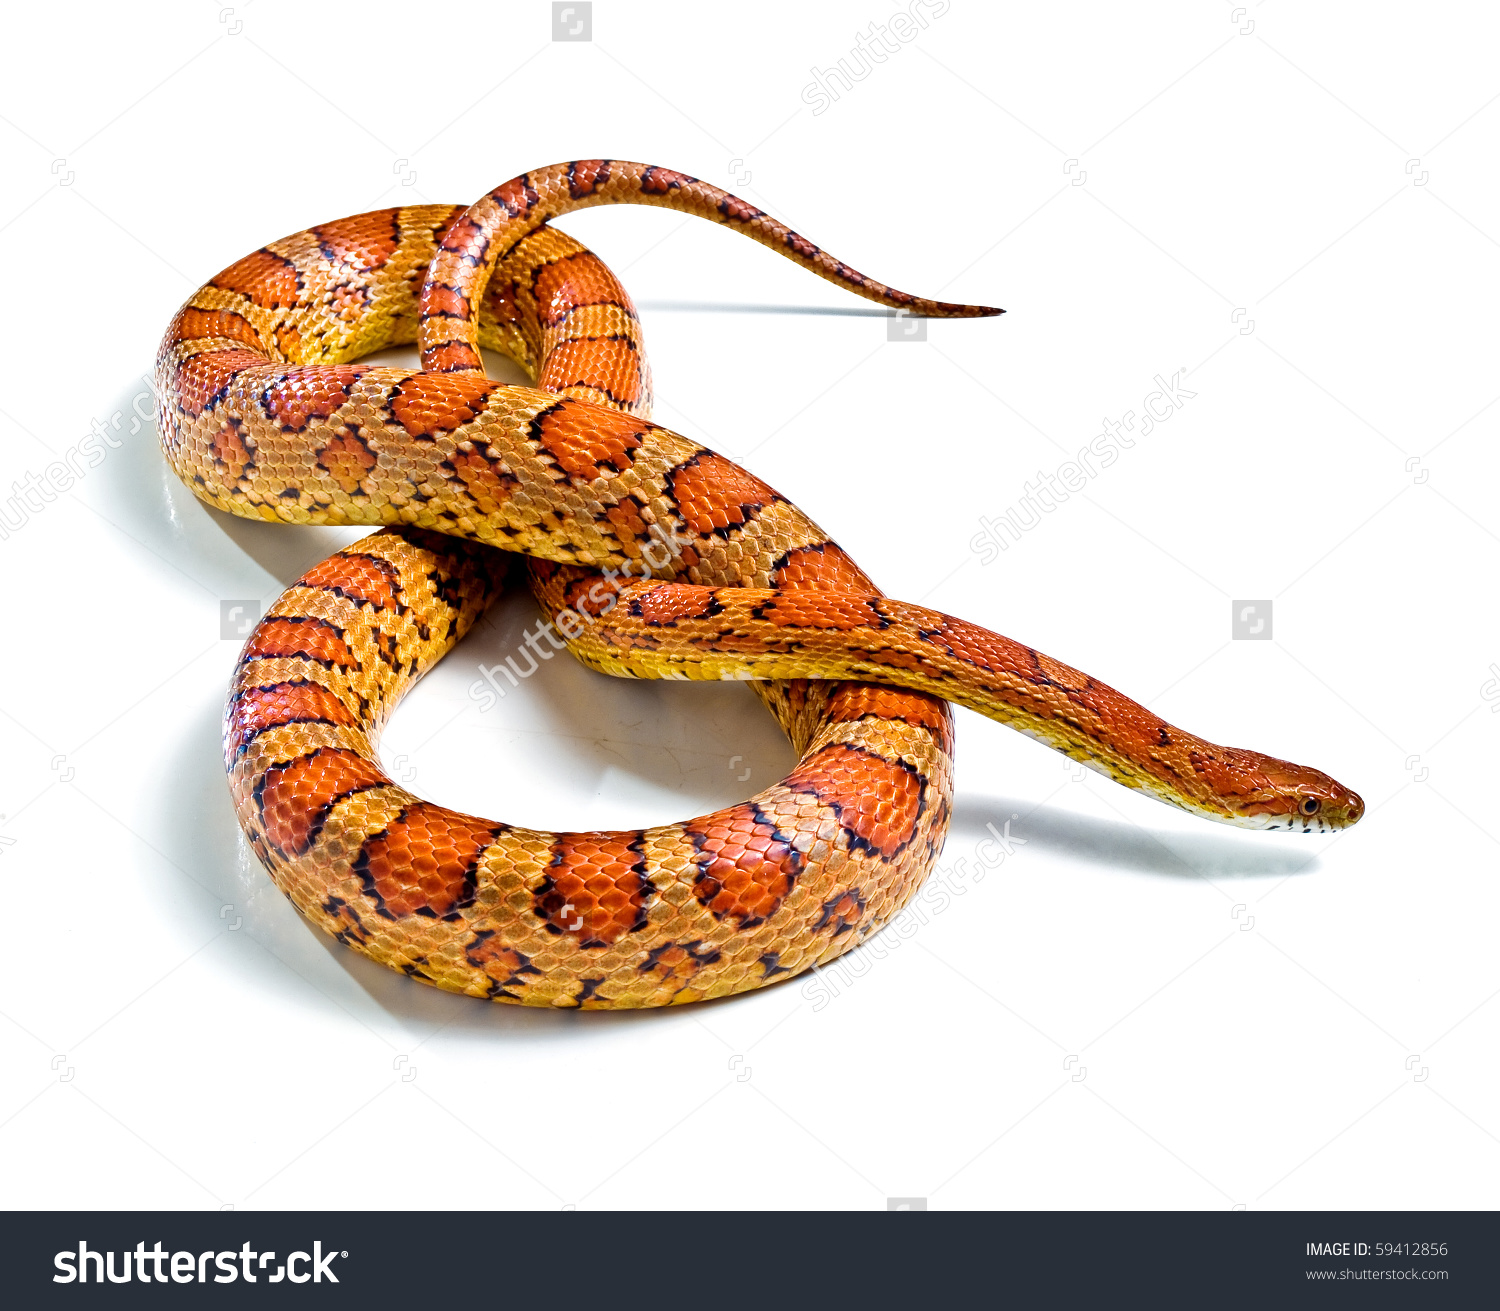 Corn Snake clipart #8, Download drawings